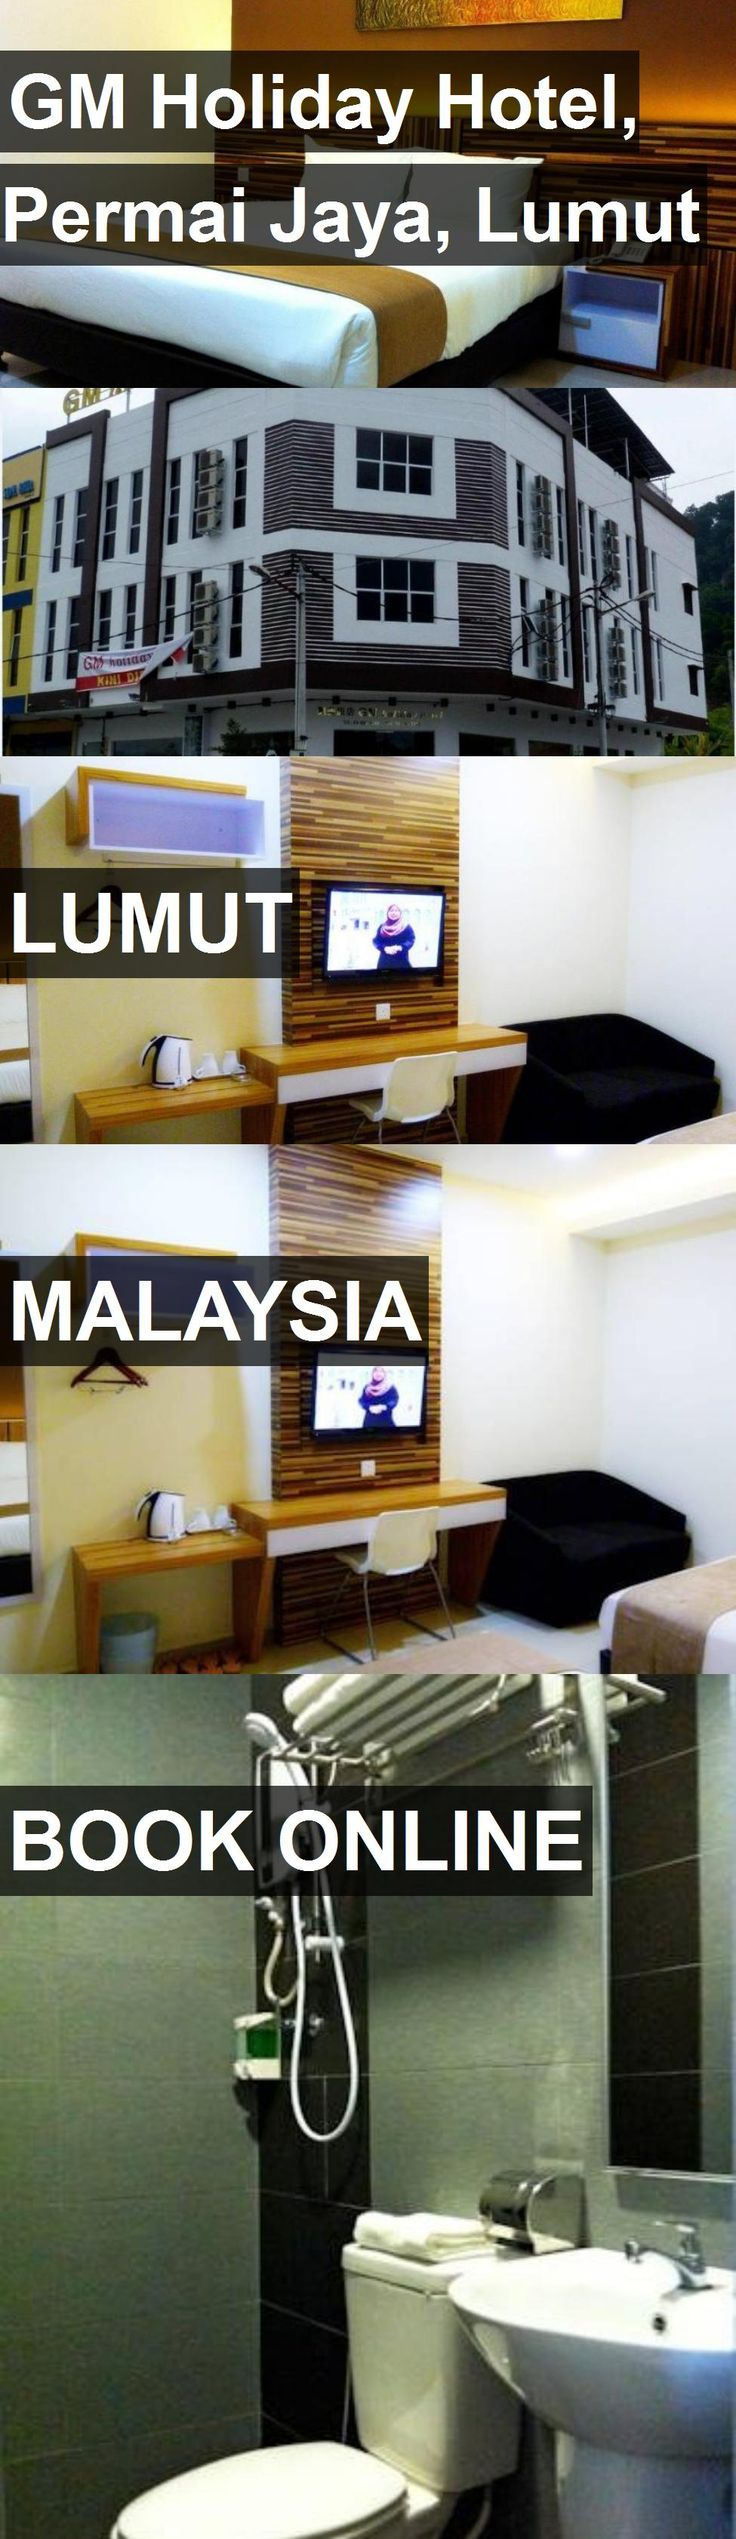 GM Holiday Hotel, Permai Jaya, Lumut in Lumut, Malaysia. For more information, photos, reviews and best prices please follow the link. #Malaysia #Lumut #travel #vacation #hotel